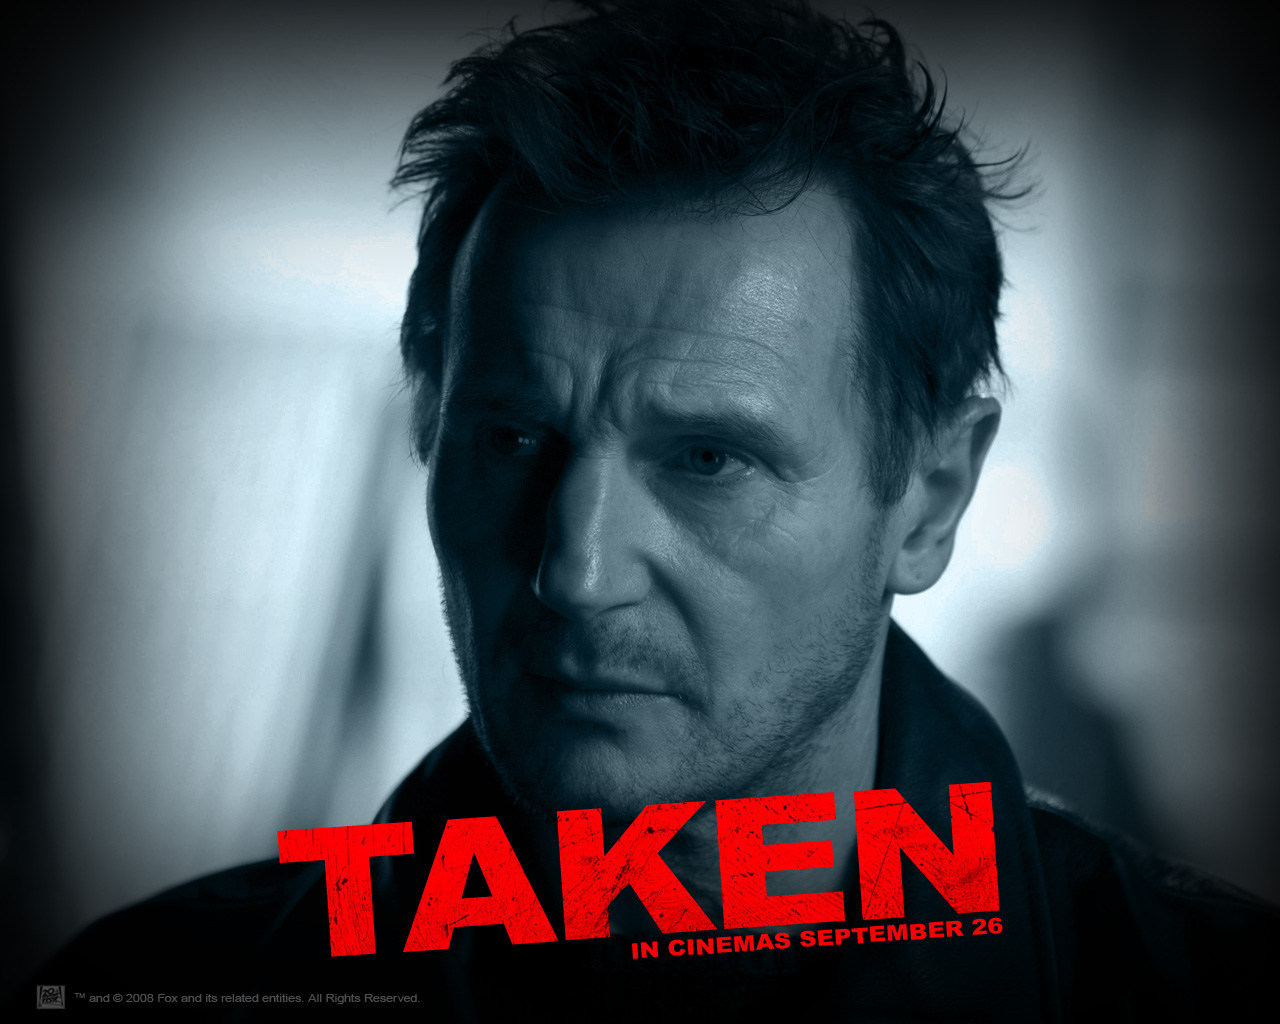 taken movie images taken hd wallpaper and background